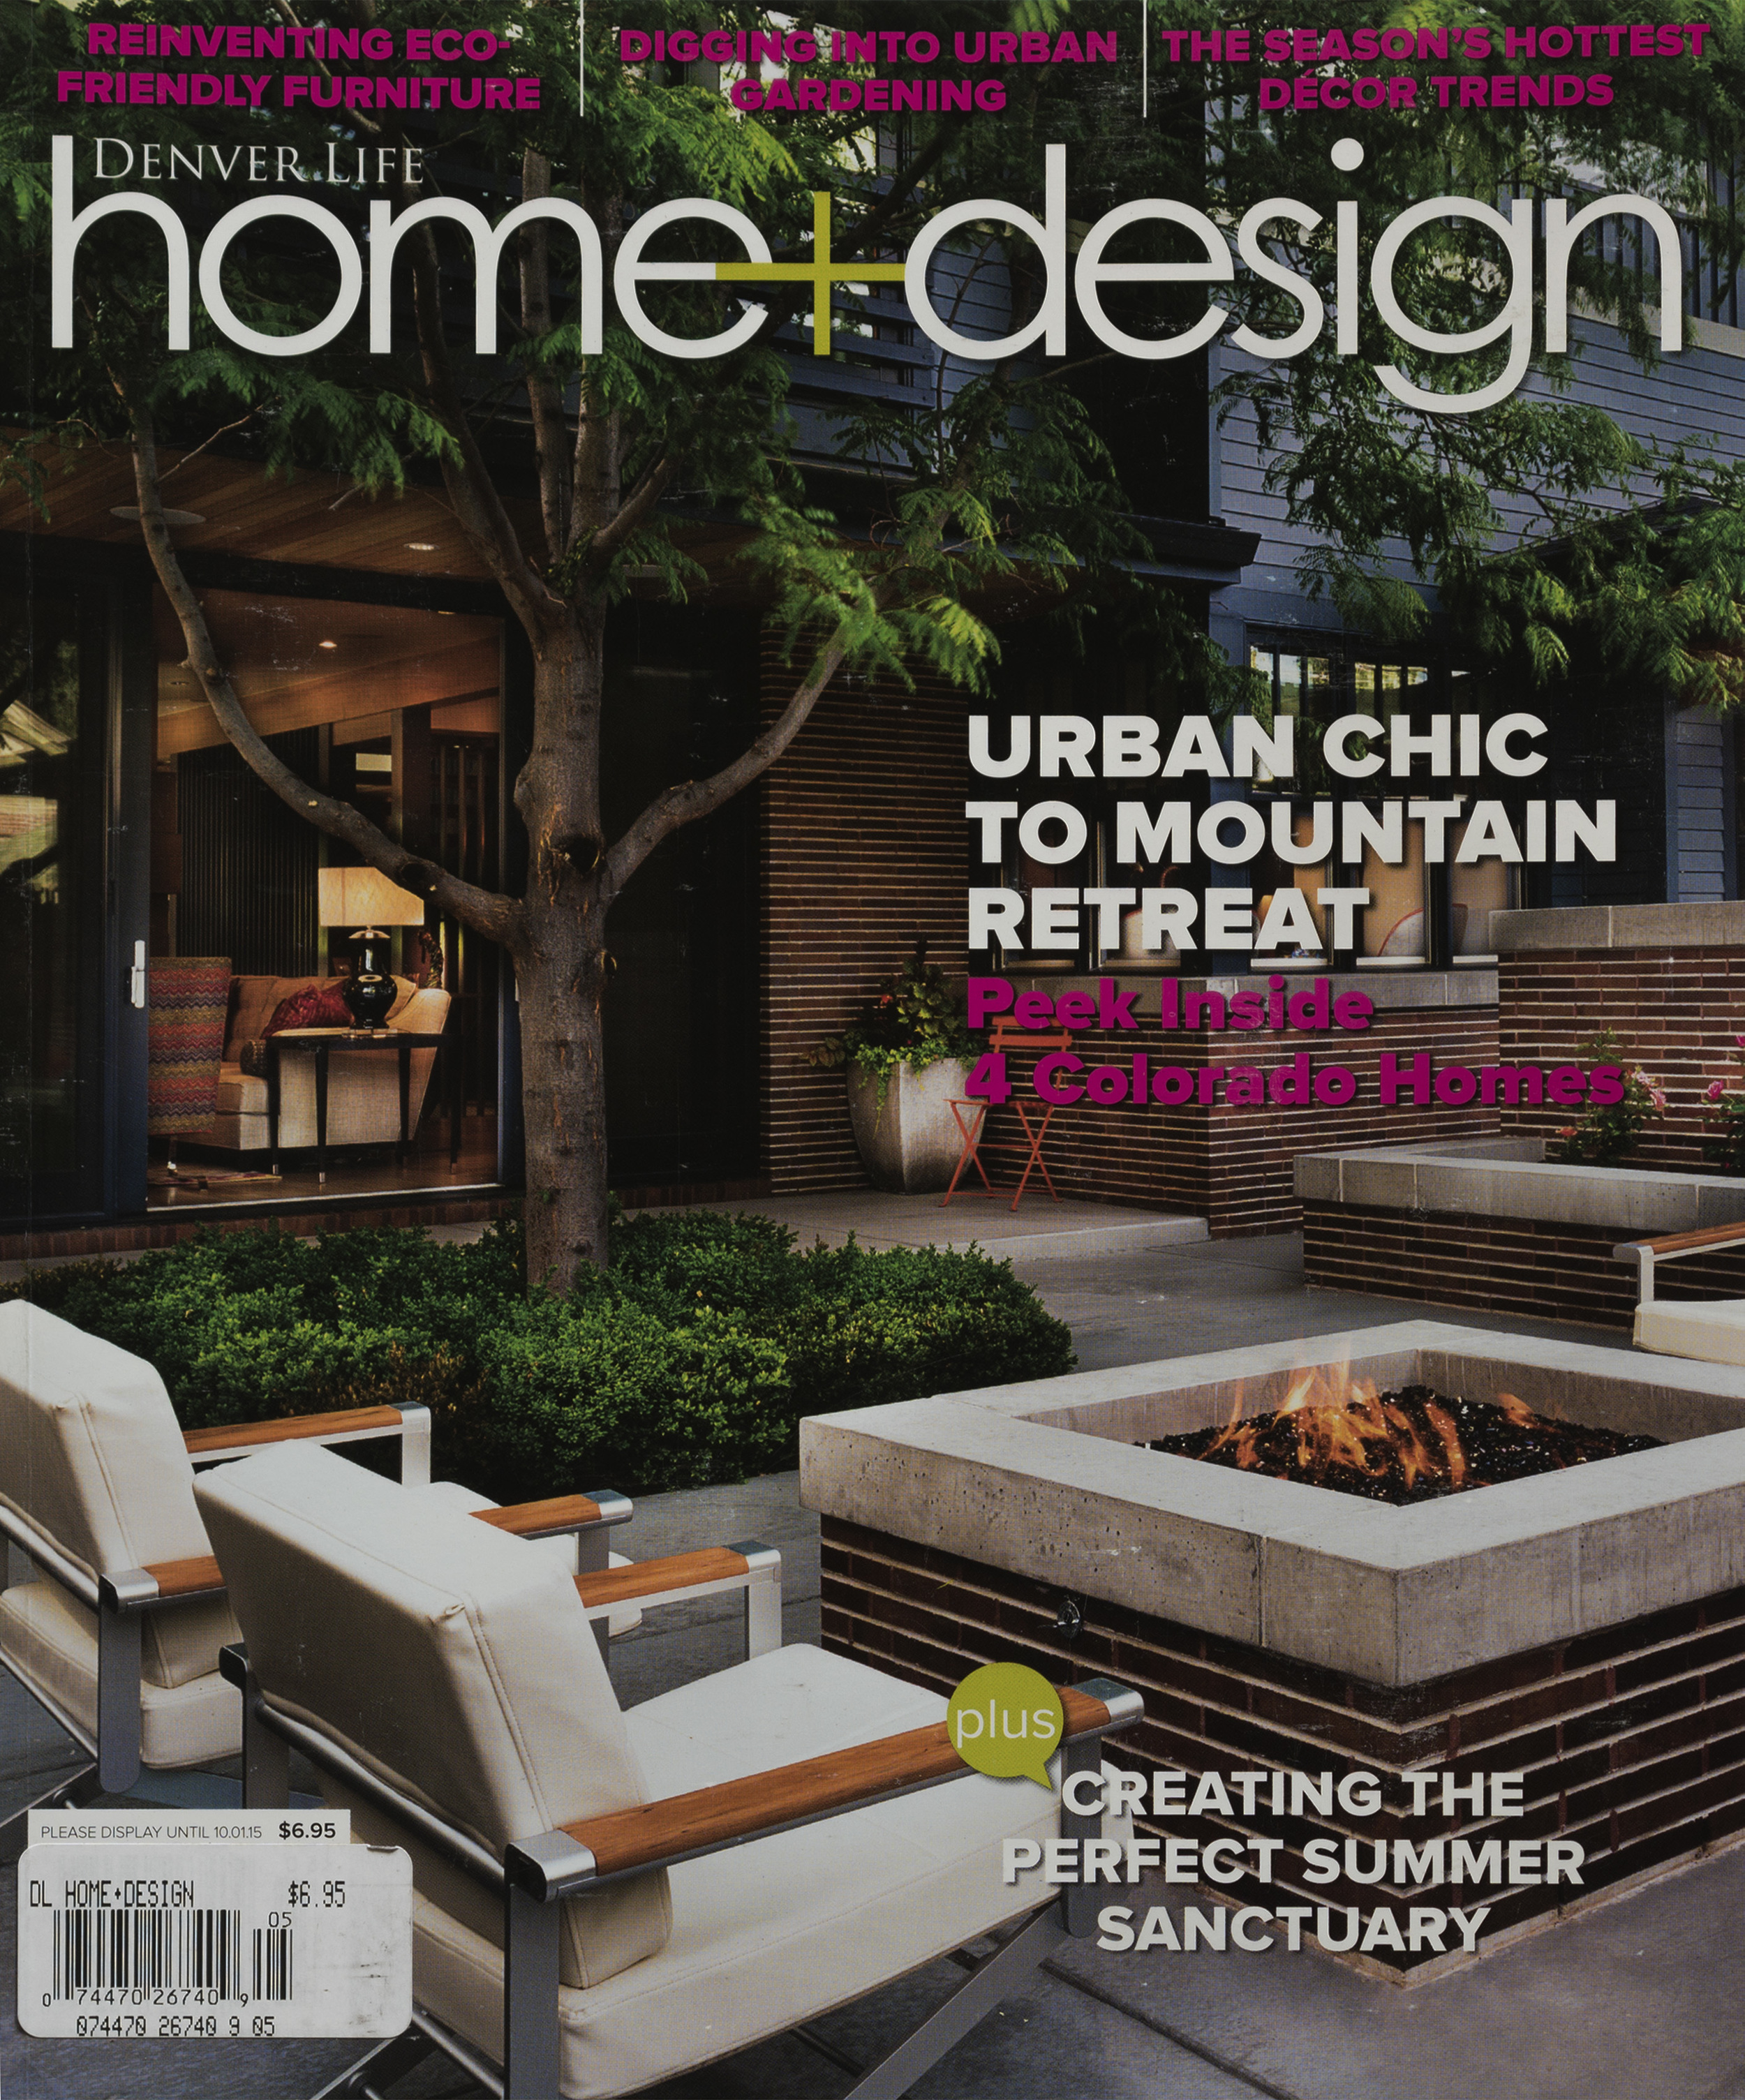 Home+Design Cover.jpg